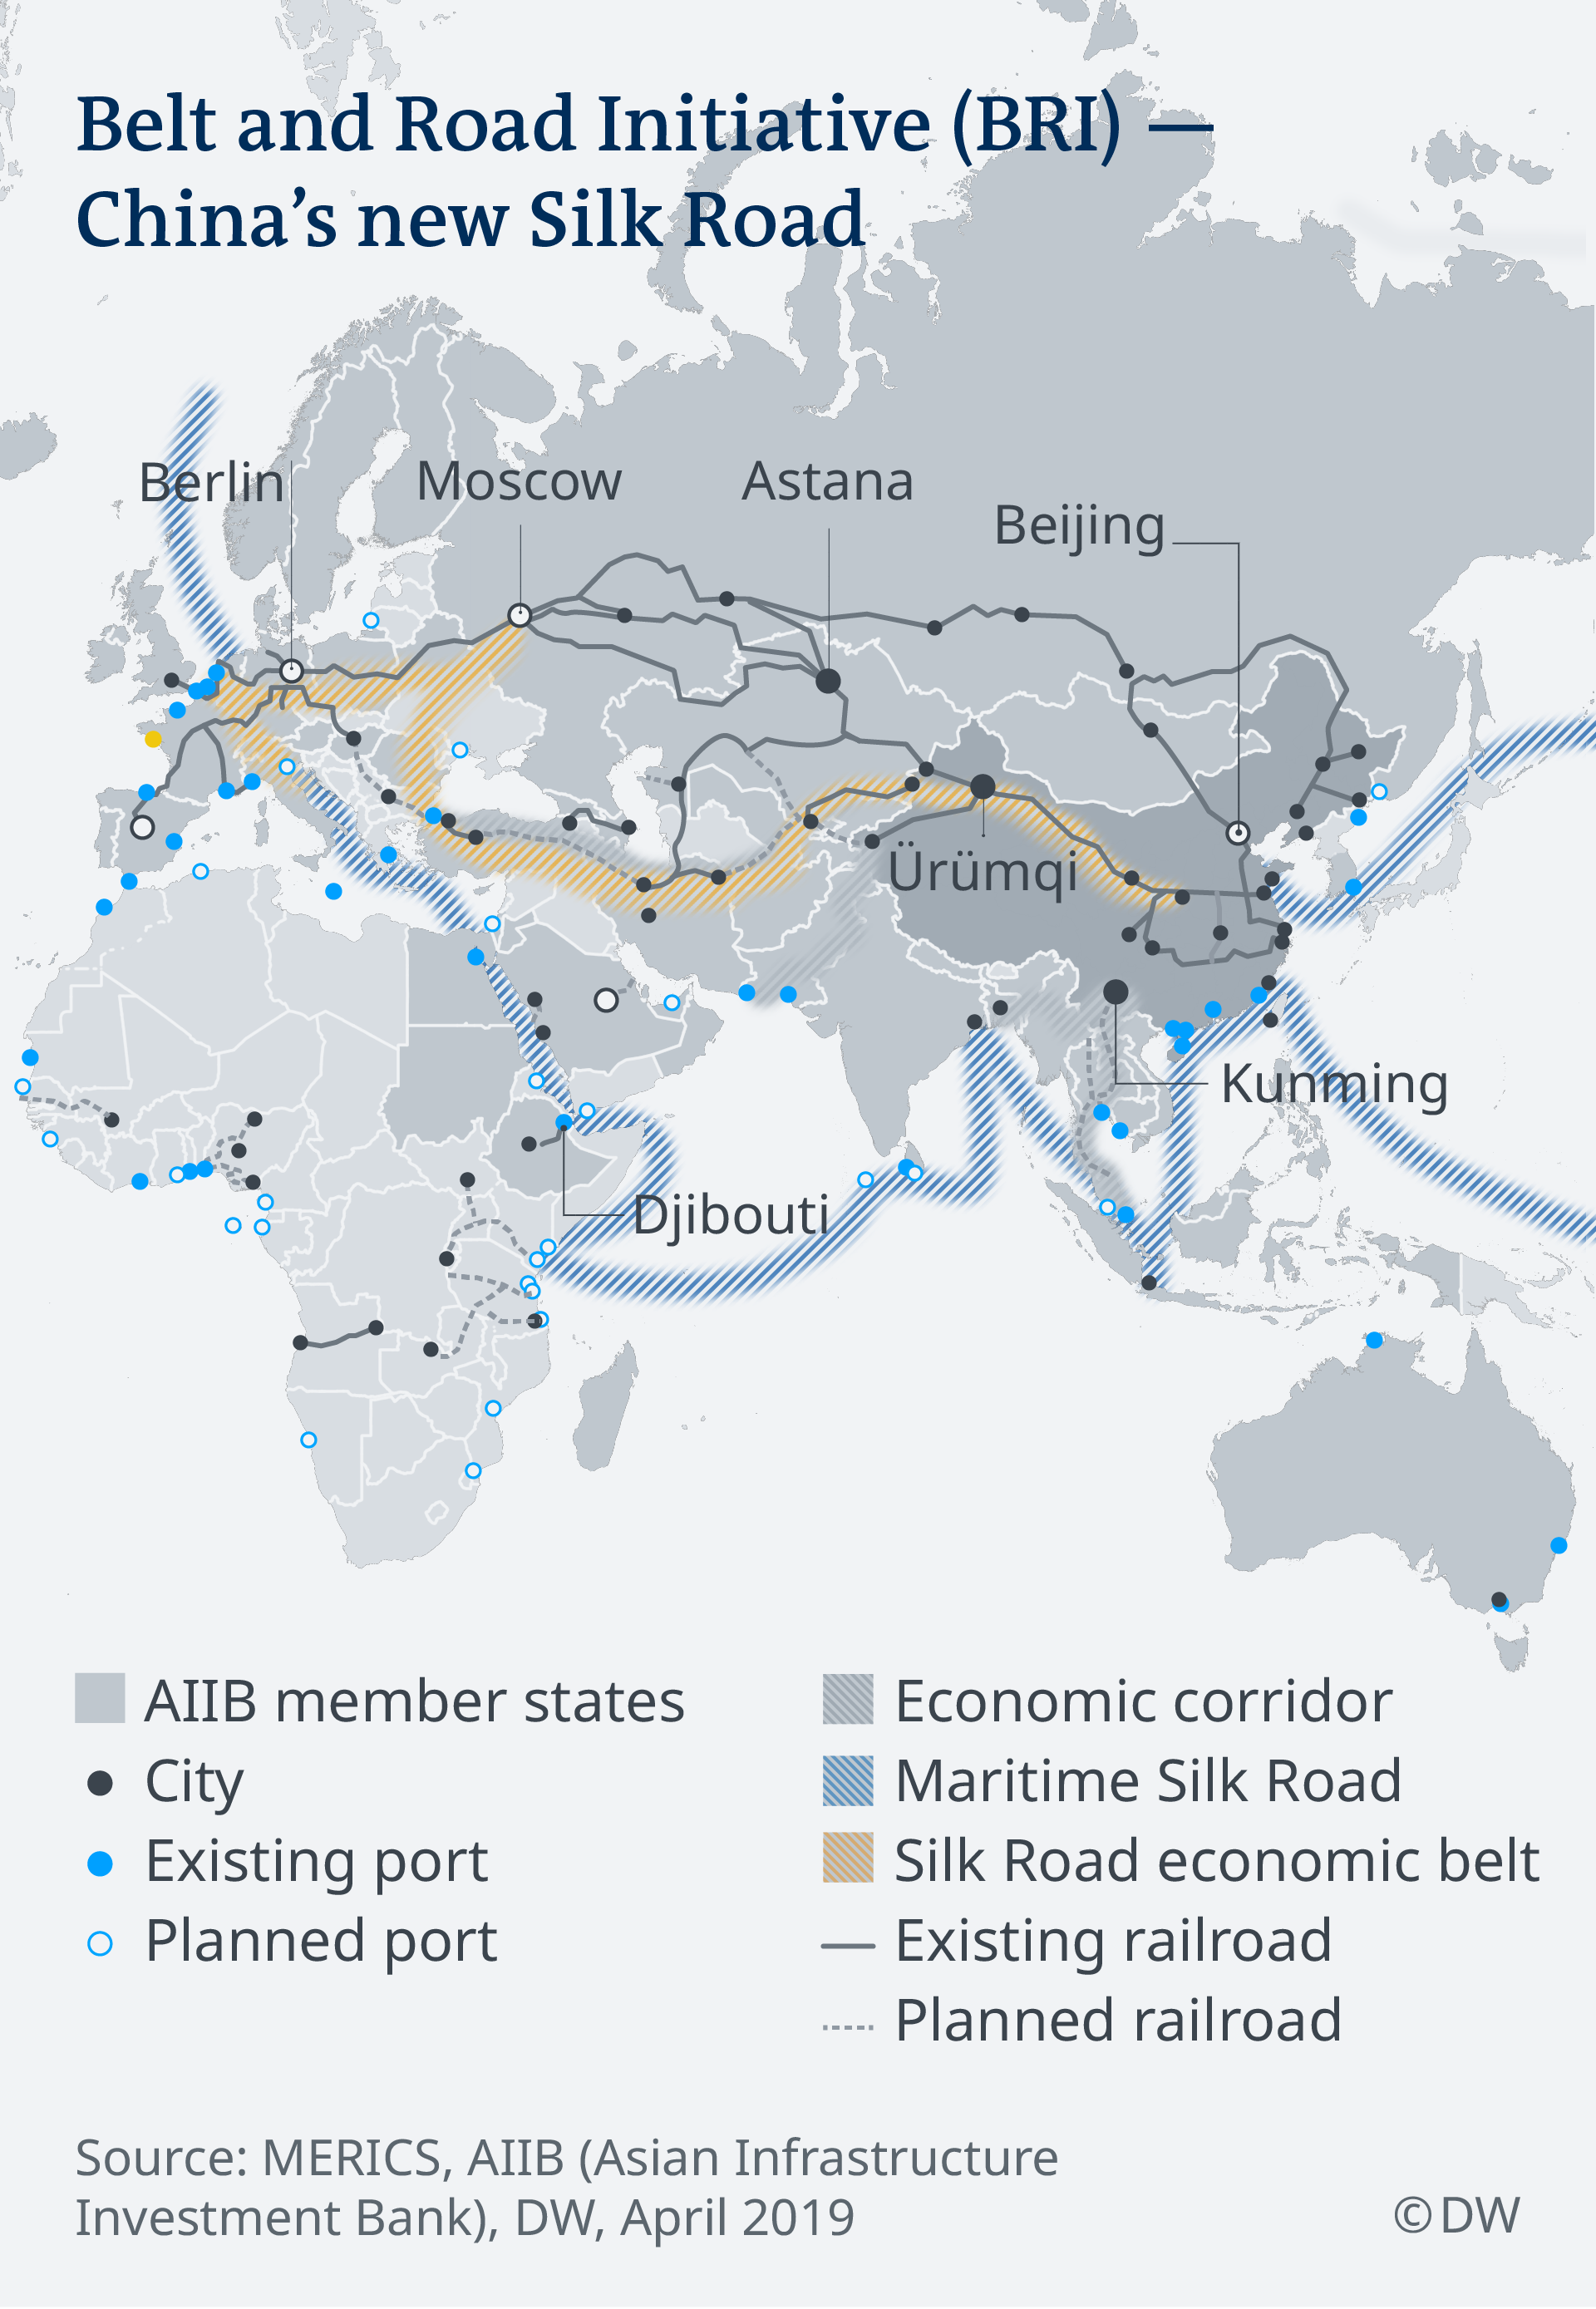 A map of China's new Silk Road